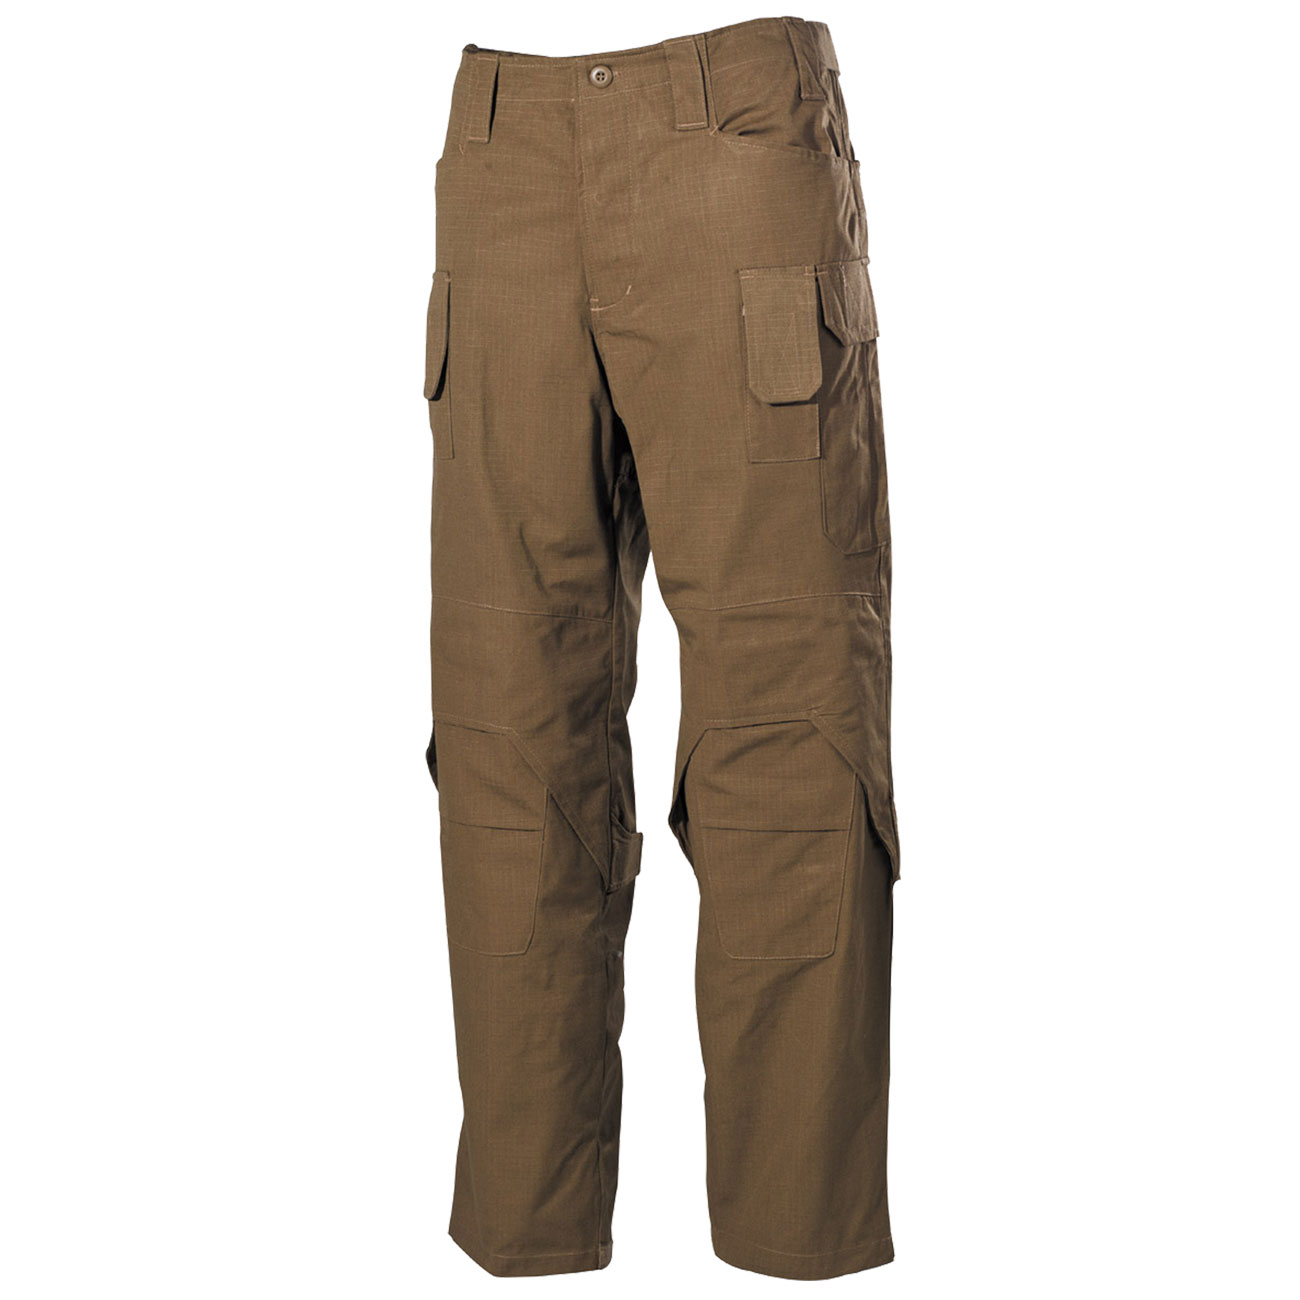 MFH Hose Mission coyote tan 0